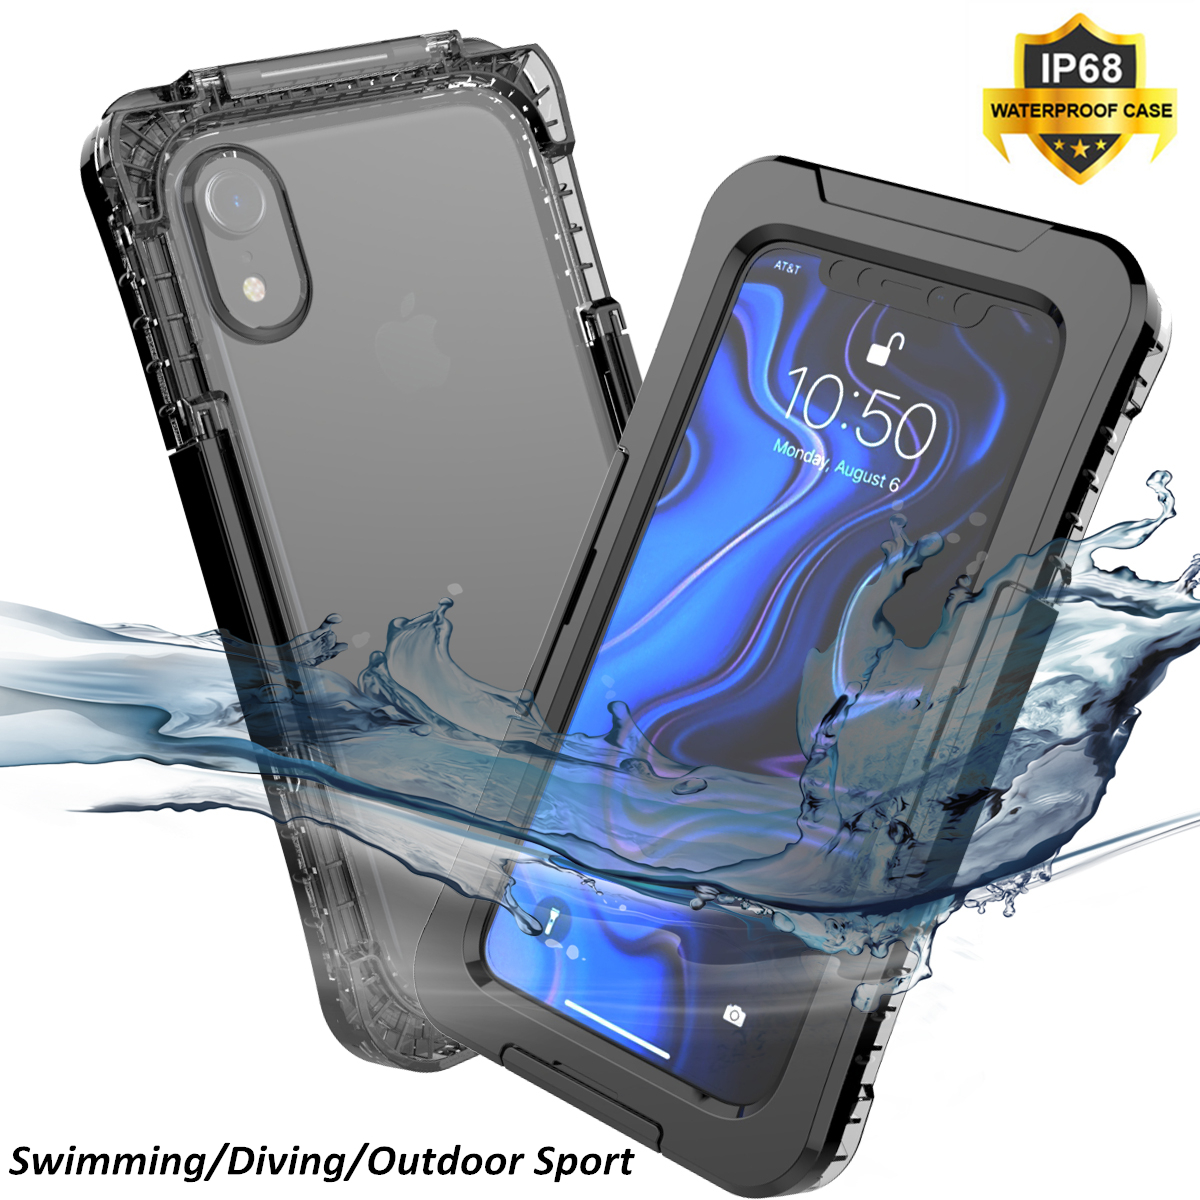 IP68 Coque For iPhone X XS Max XS Waterproof Case Shockproof Anti fall Dust proof Swimming